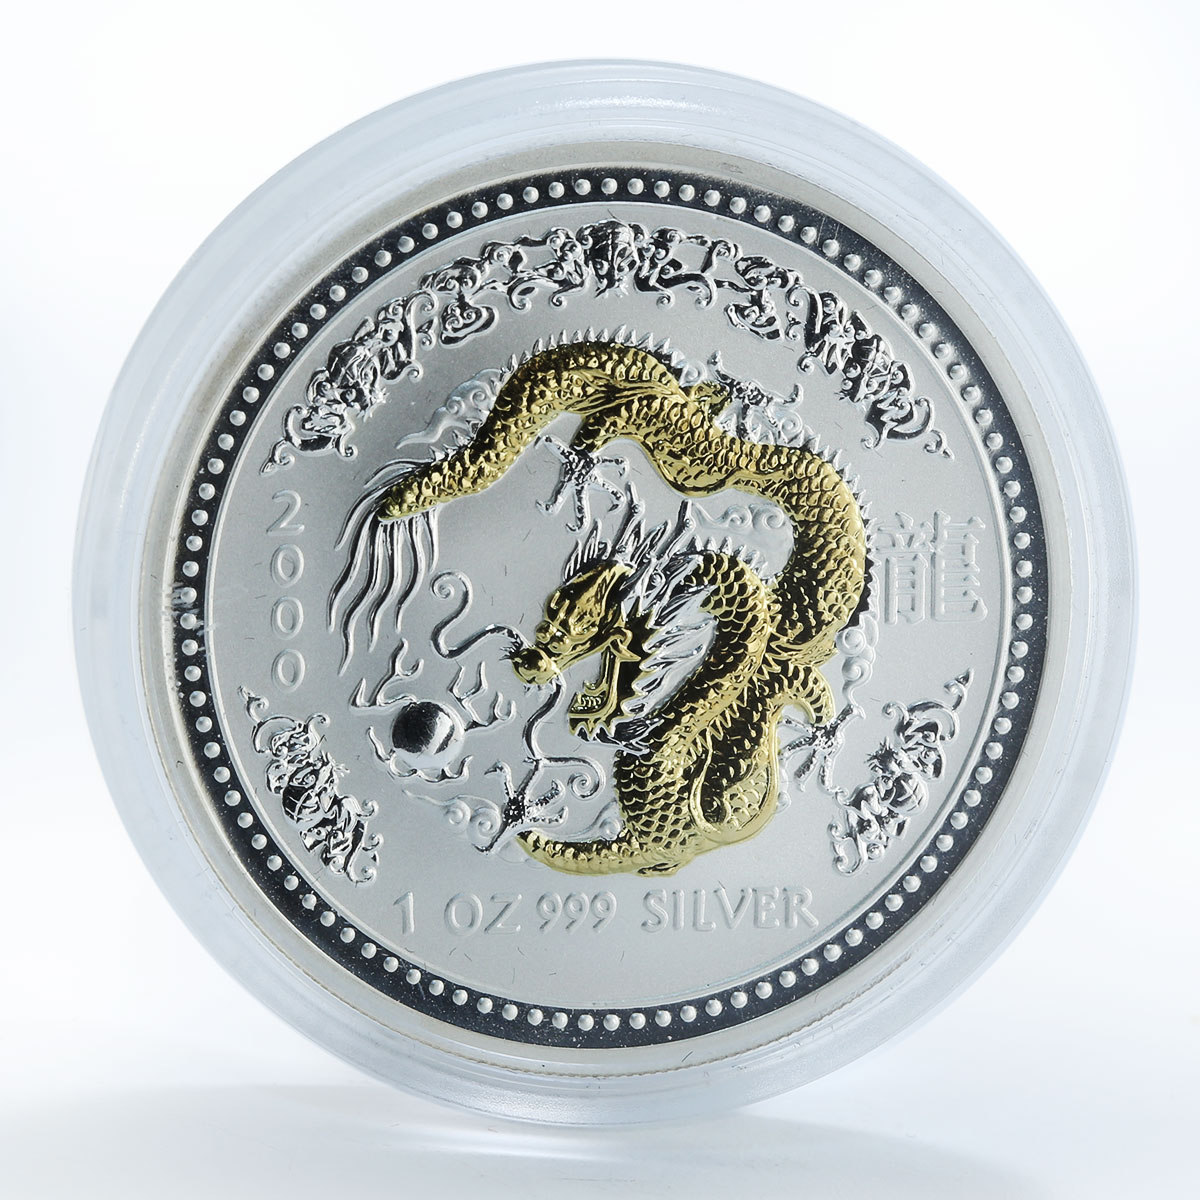 Australia 1 dollar Year of the Dragon Lunar calendar Series I gilded coin 2000